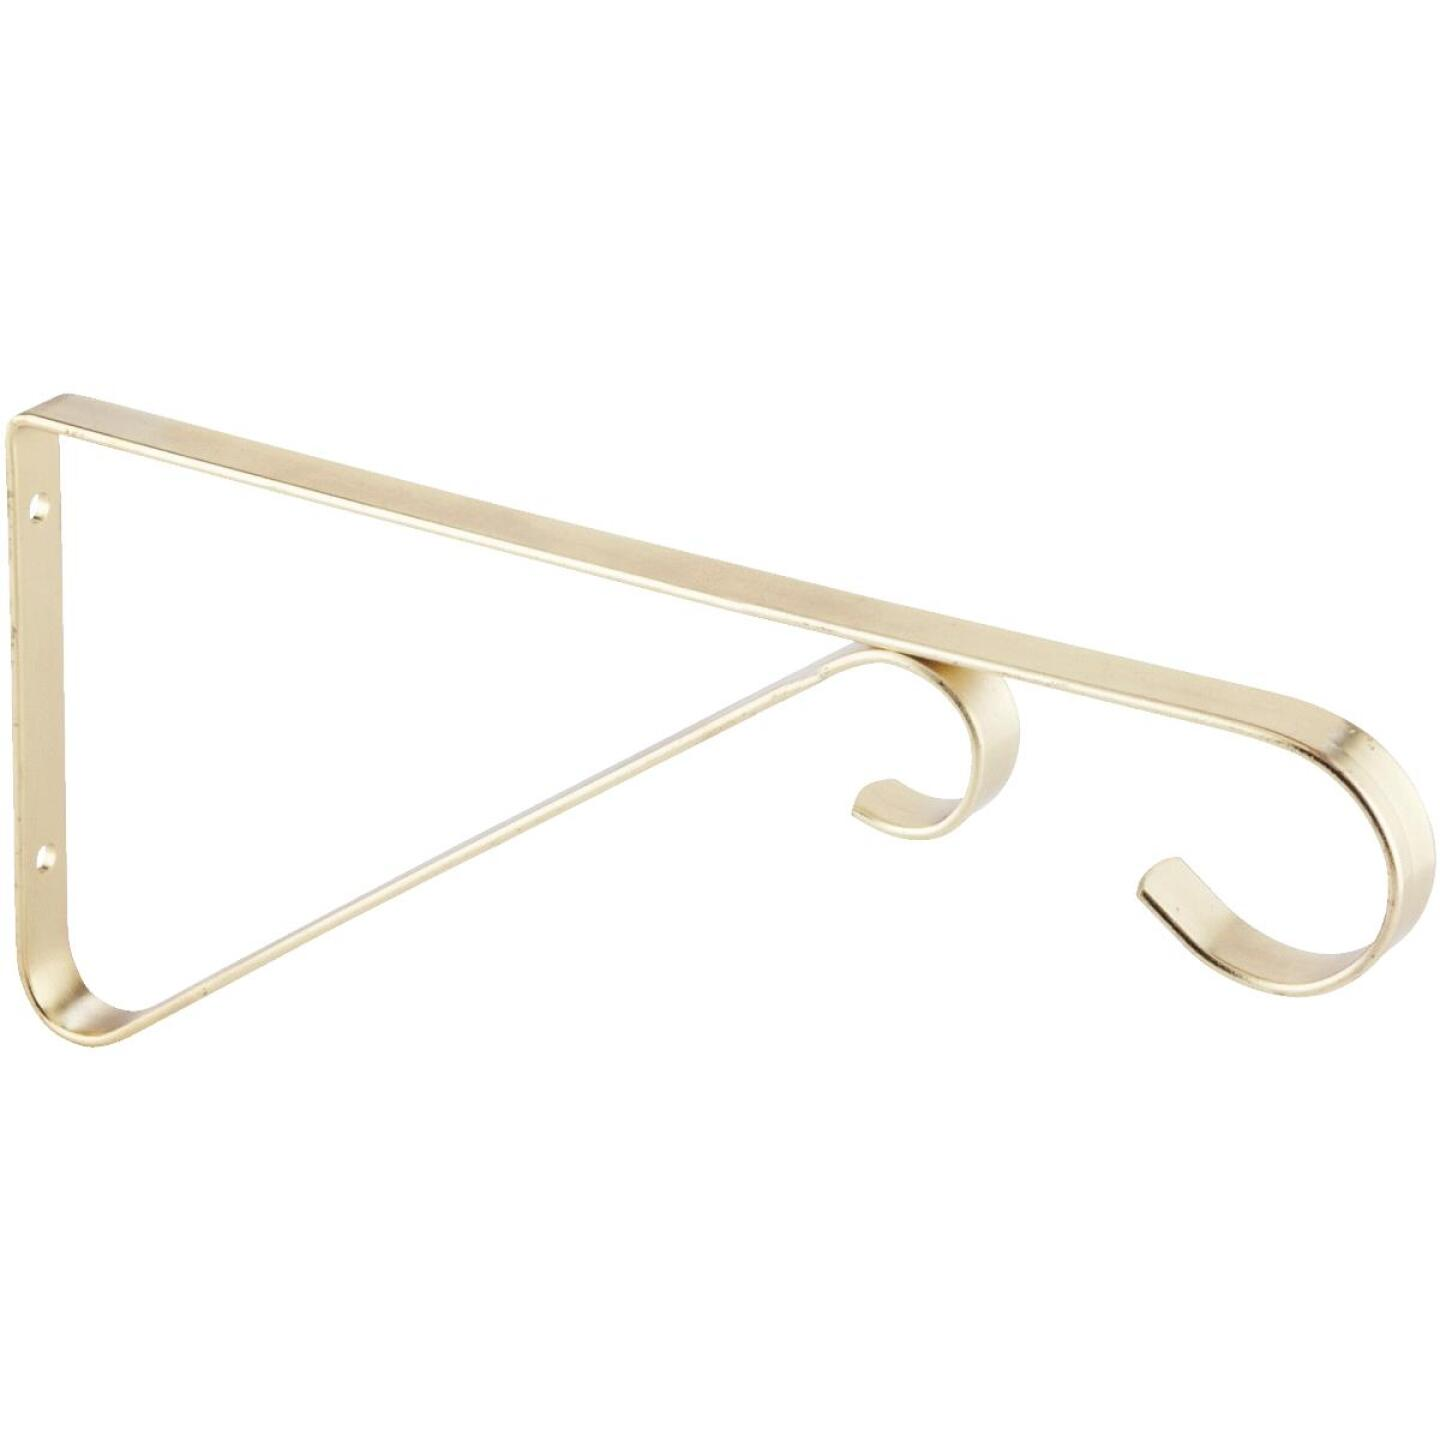 National 6 In. Brass Steel Hanging Plant Bracket Image 3